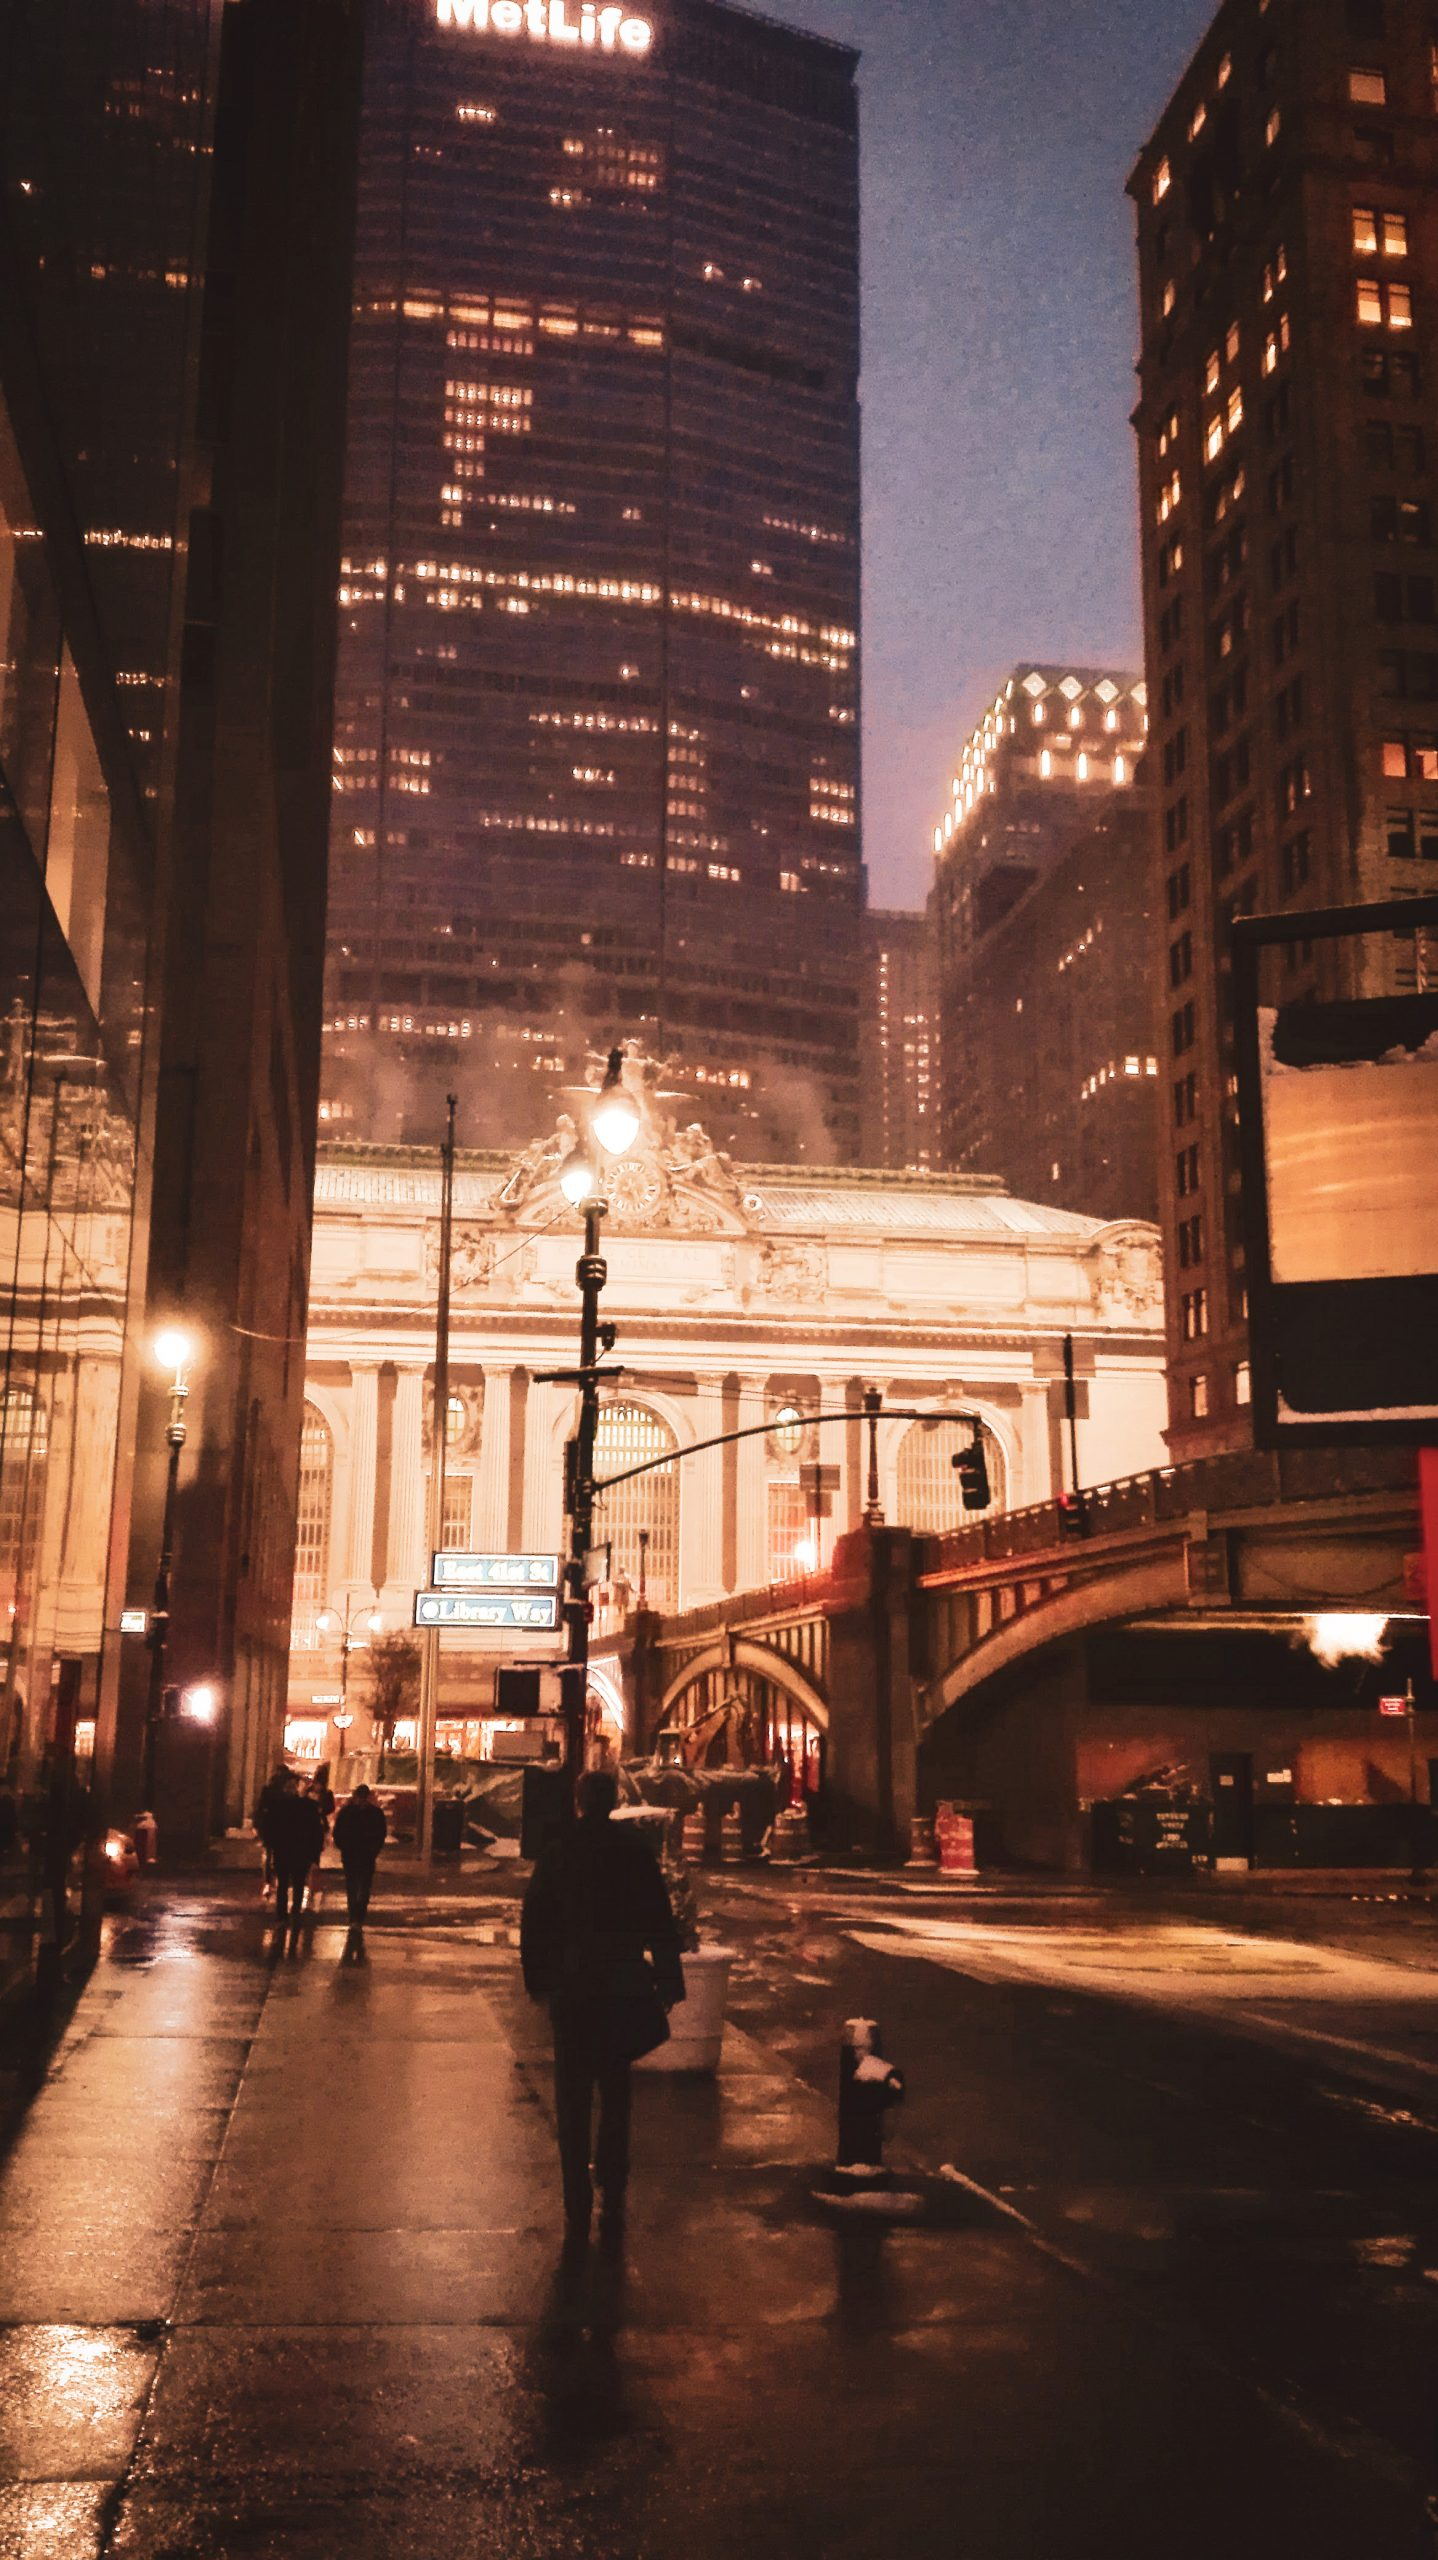 #LaPostal: Grand Central Terminal